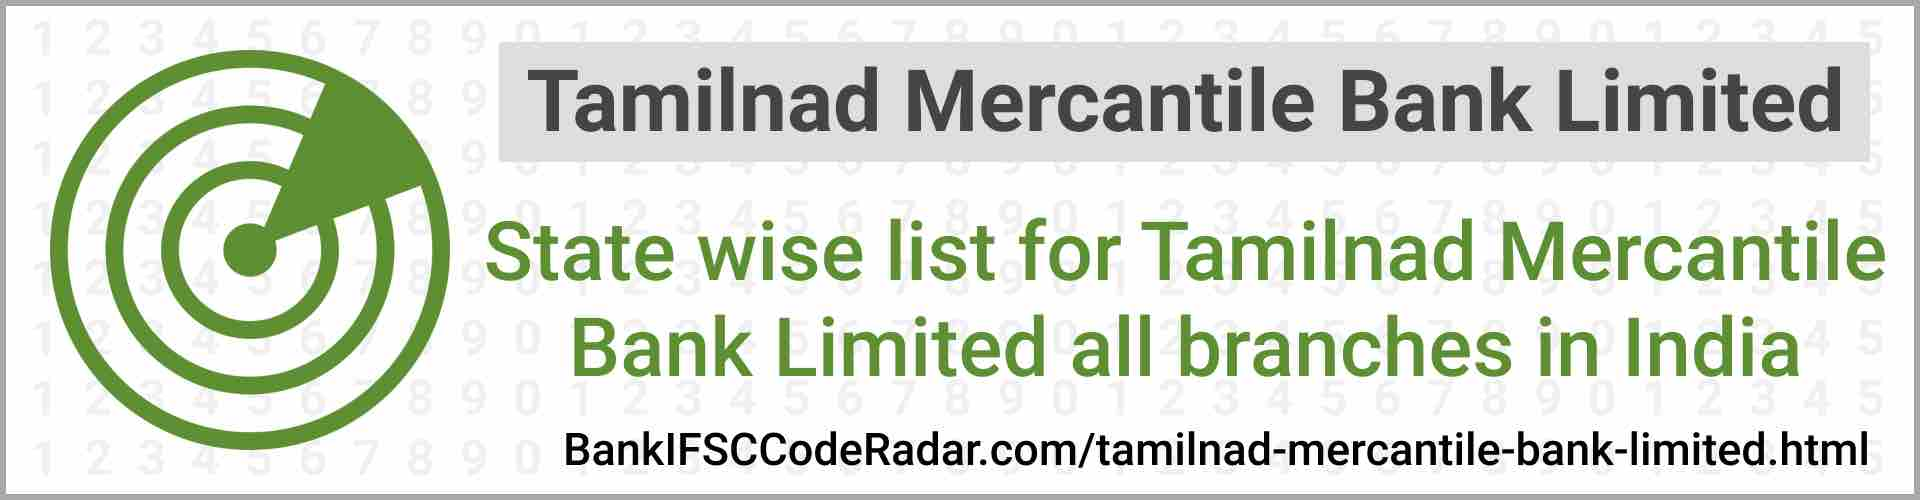 Tamilnad Mercantile Bank Limited All Branches India